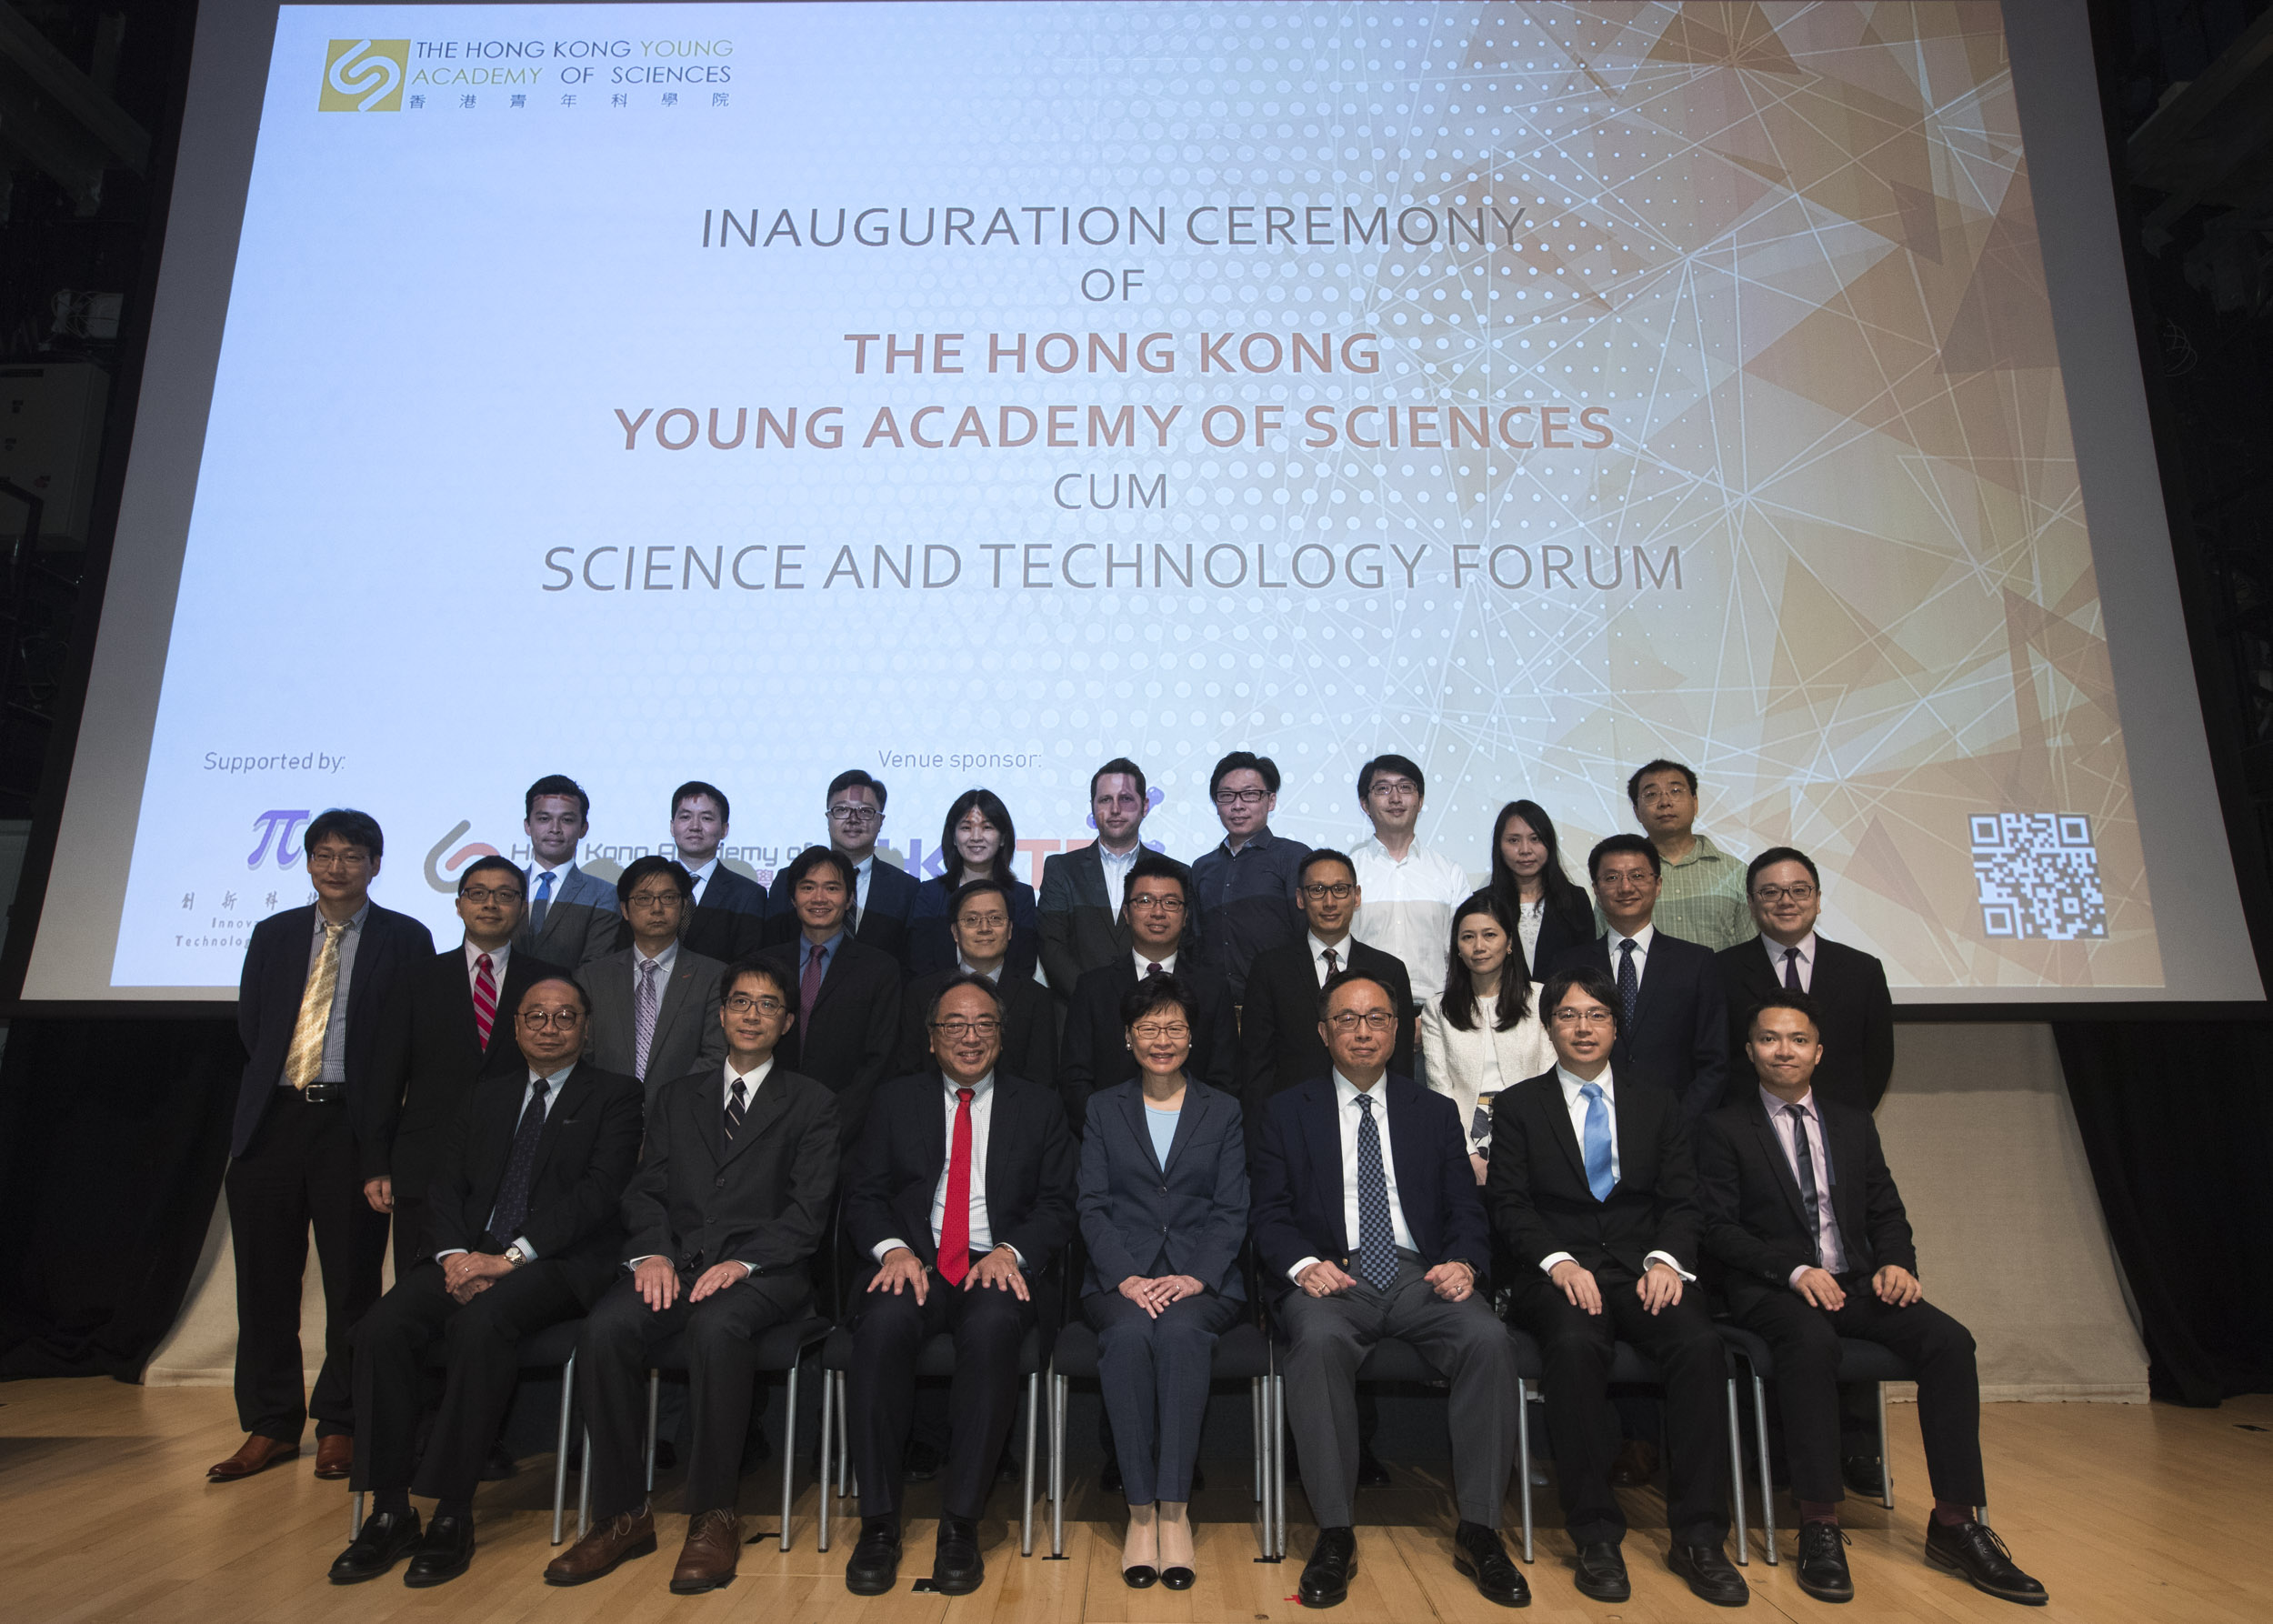 Inauguration Ceremony of The Hong Kong Young Academy of Sciences